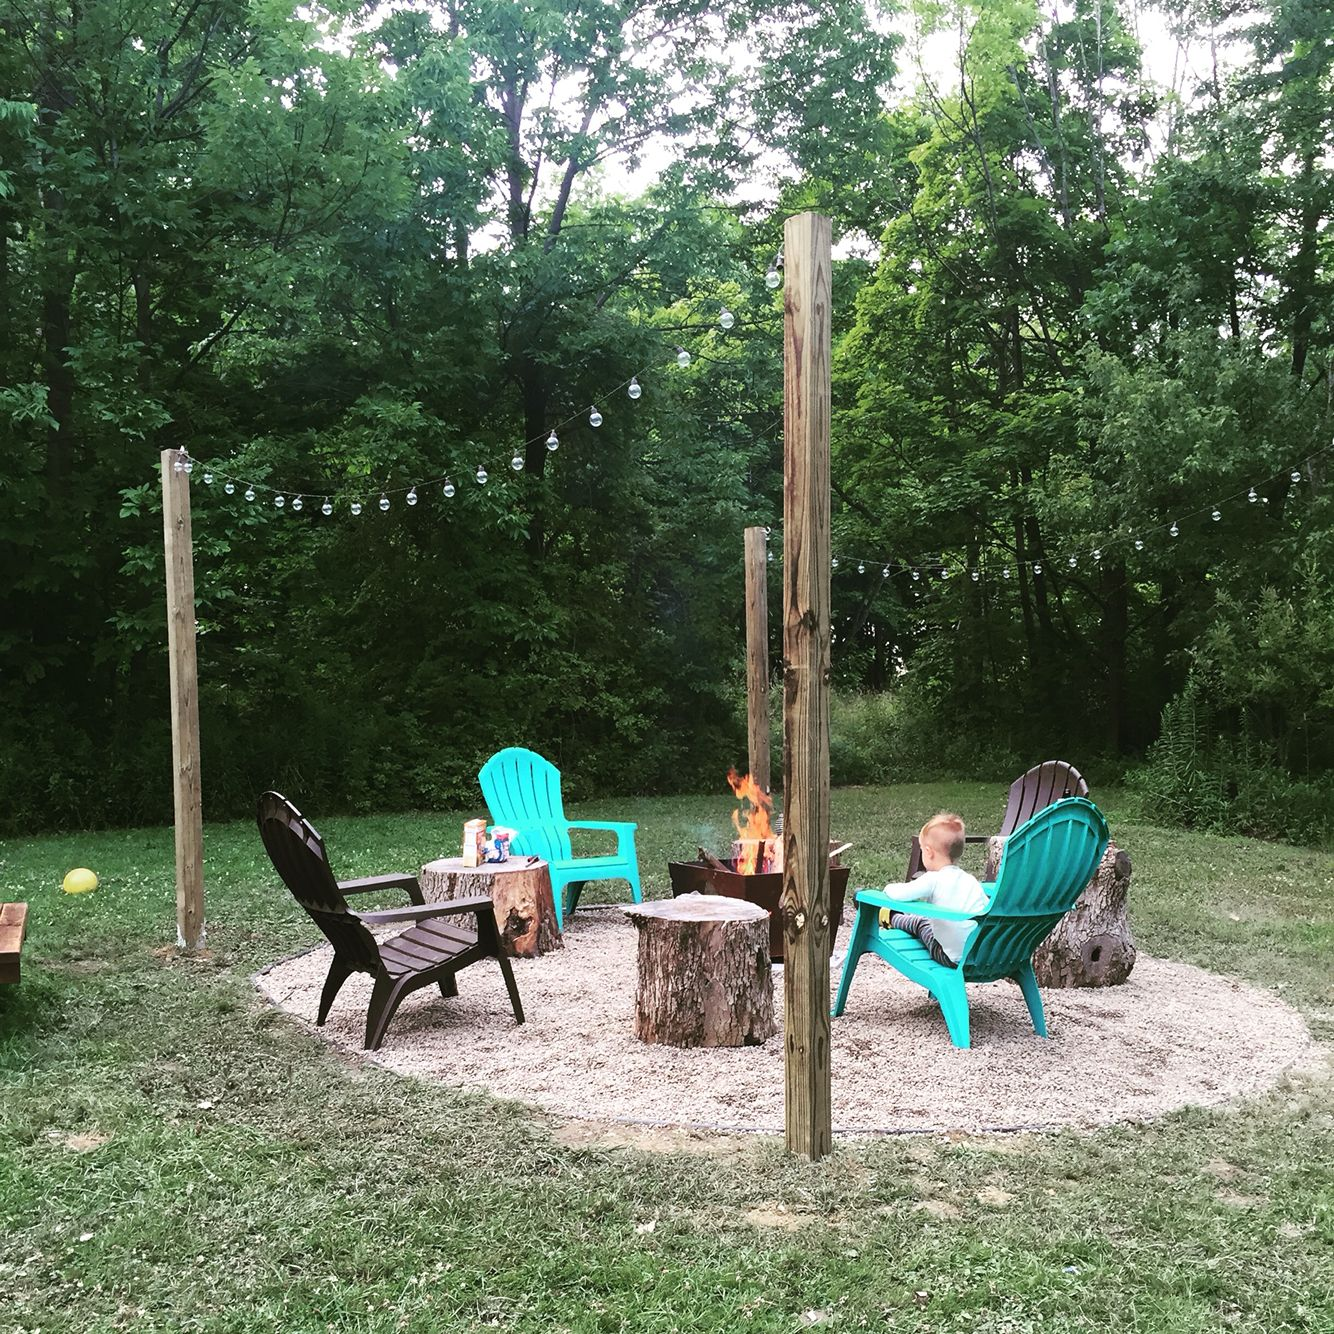 Backyard Fire Pit Landscaping Ideas: Our Fire DIY Fire Pit #firepit #backyard #countryliving